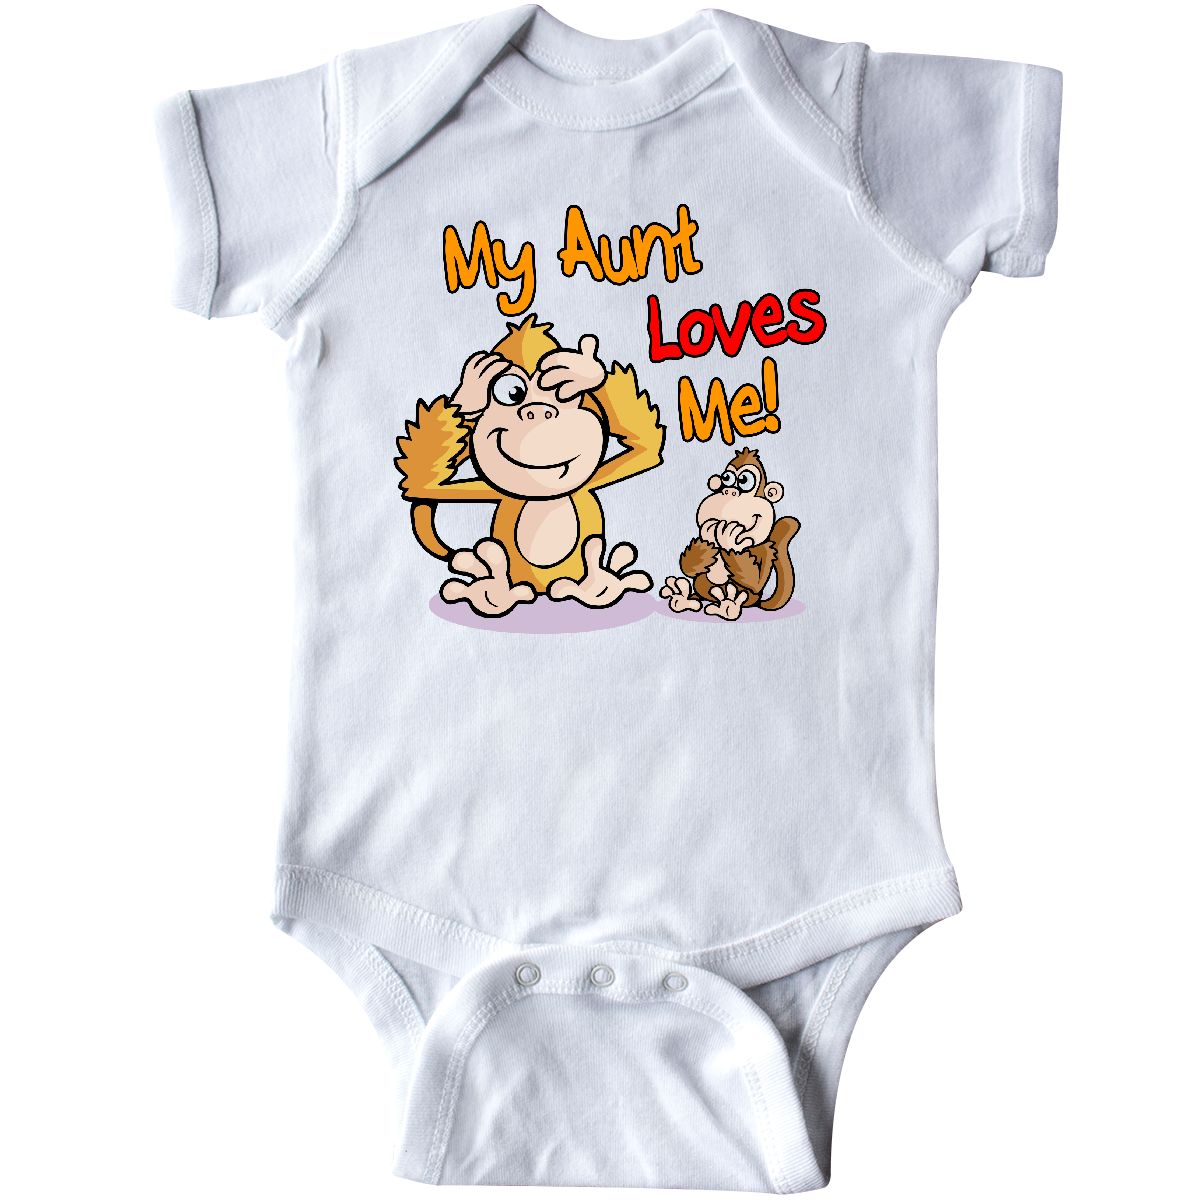 090c3ed1d Inktastic My Aunt Loves Me Monkey Infant Creeper Cute One-piece | eBay